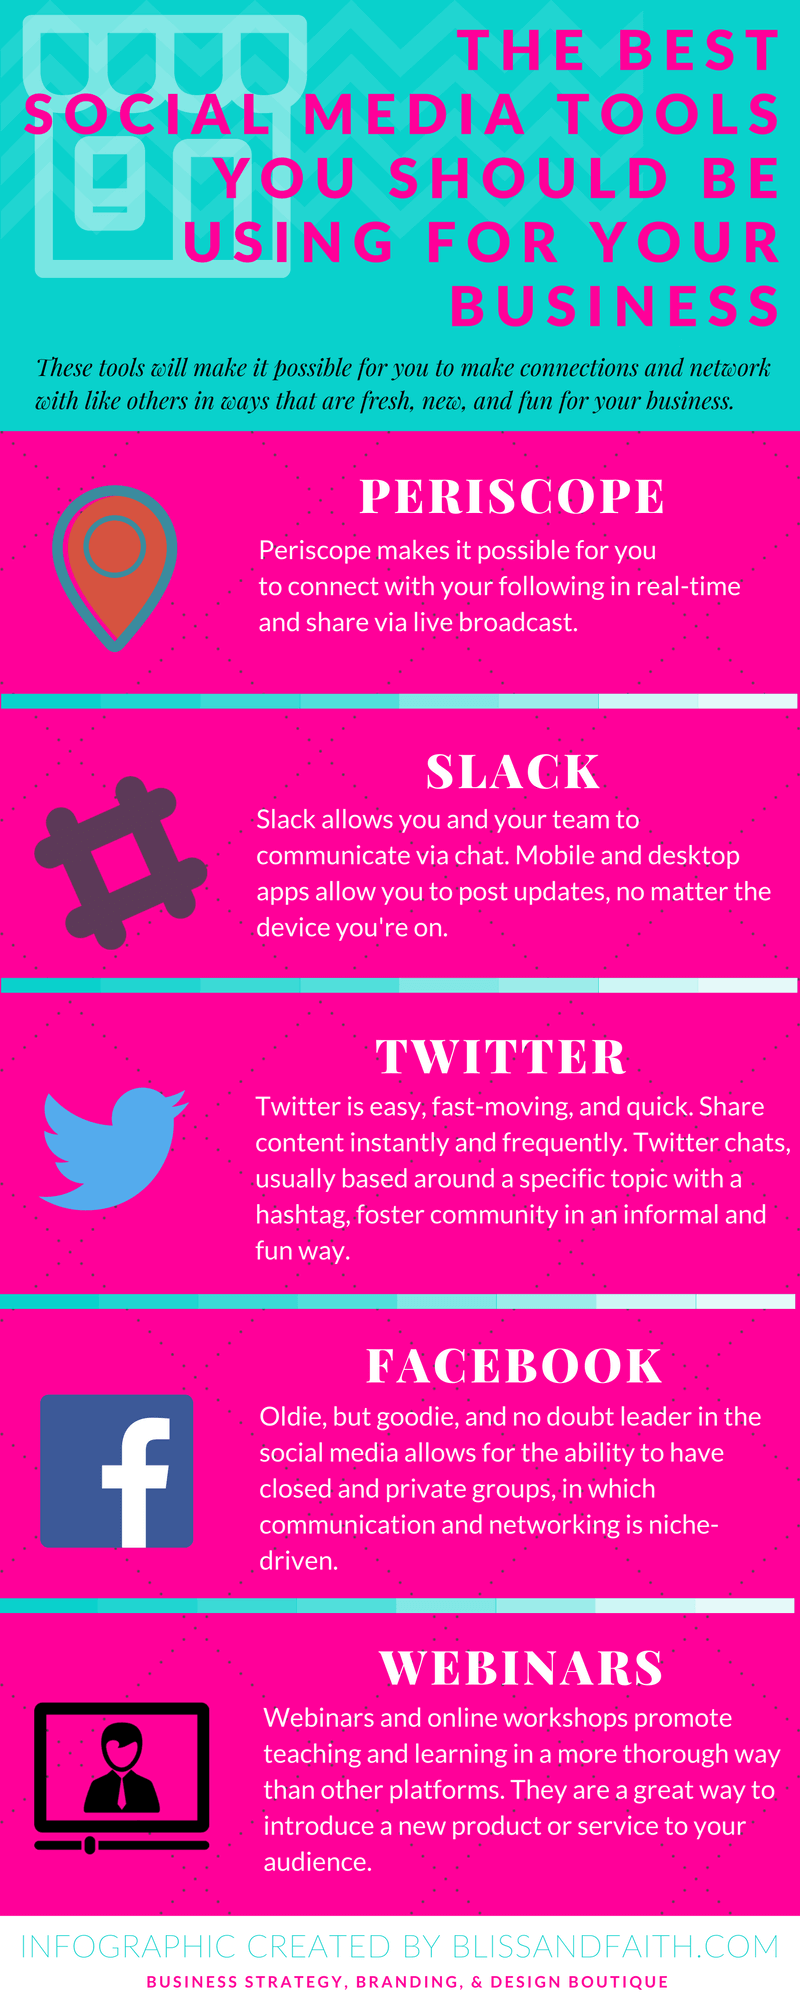 5 Social Media Tools You Should Be Using For Your Business   BlissandFaith.com